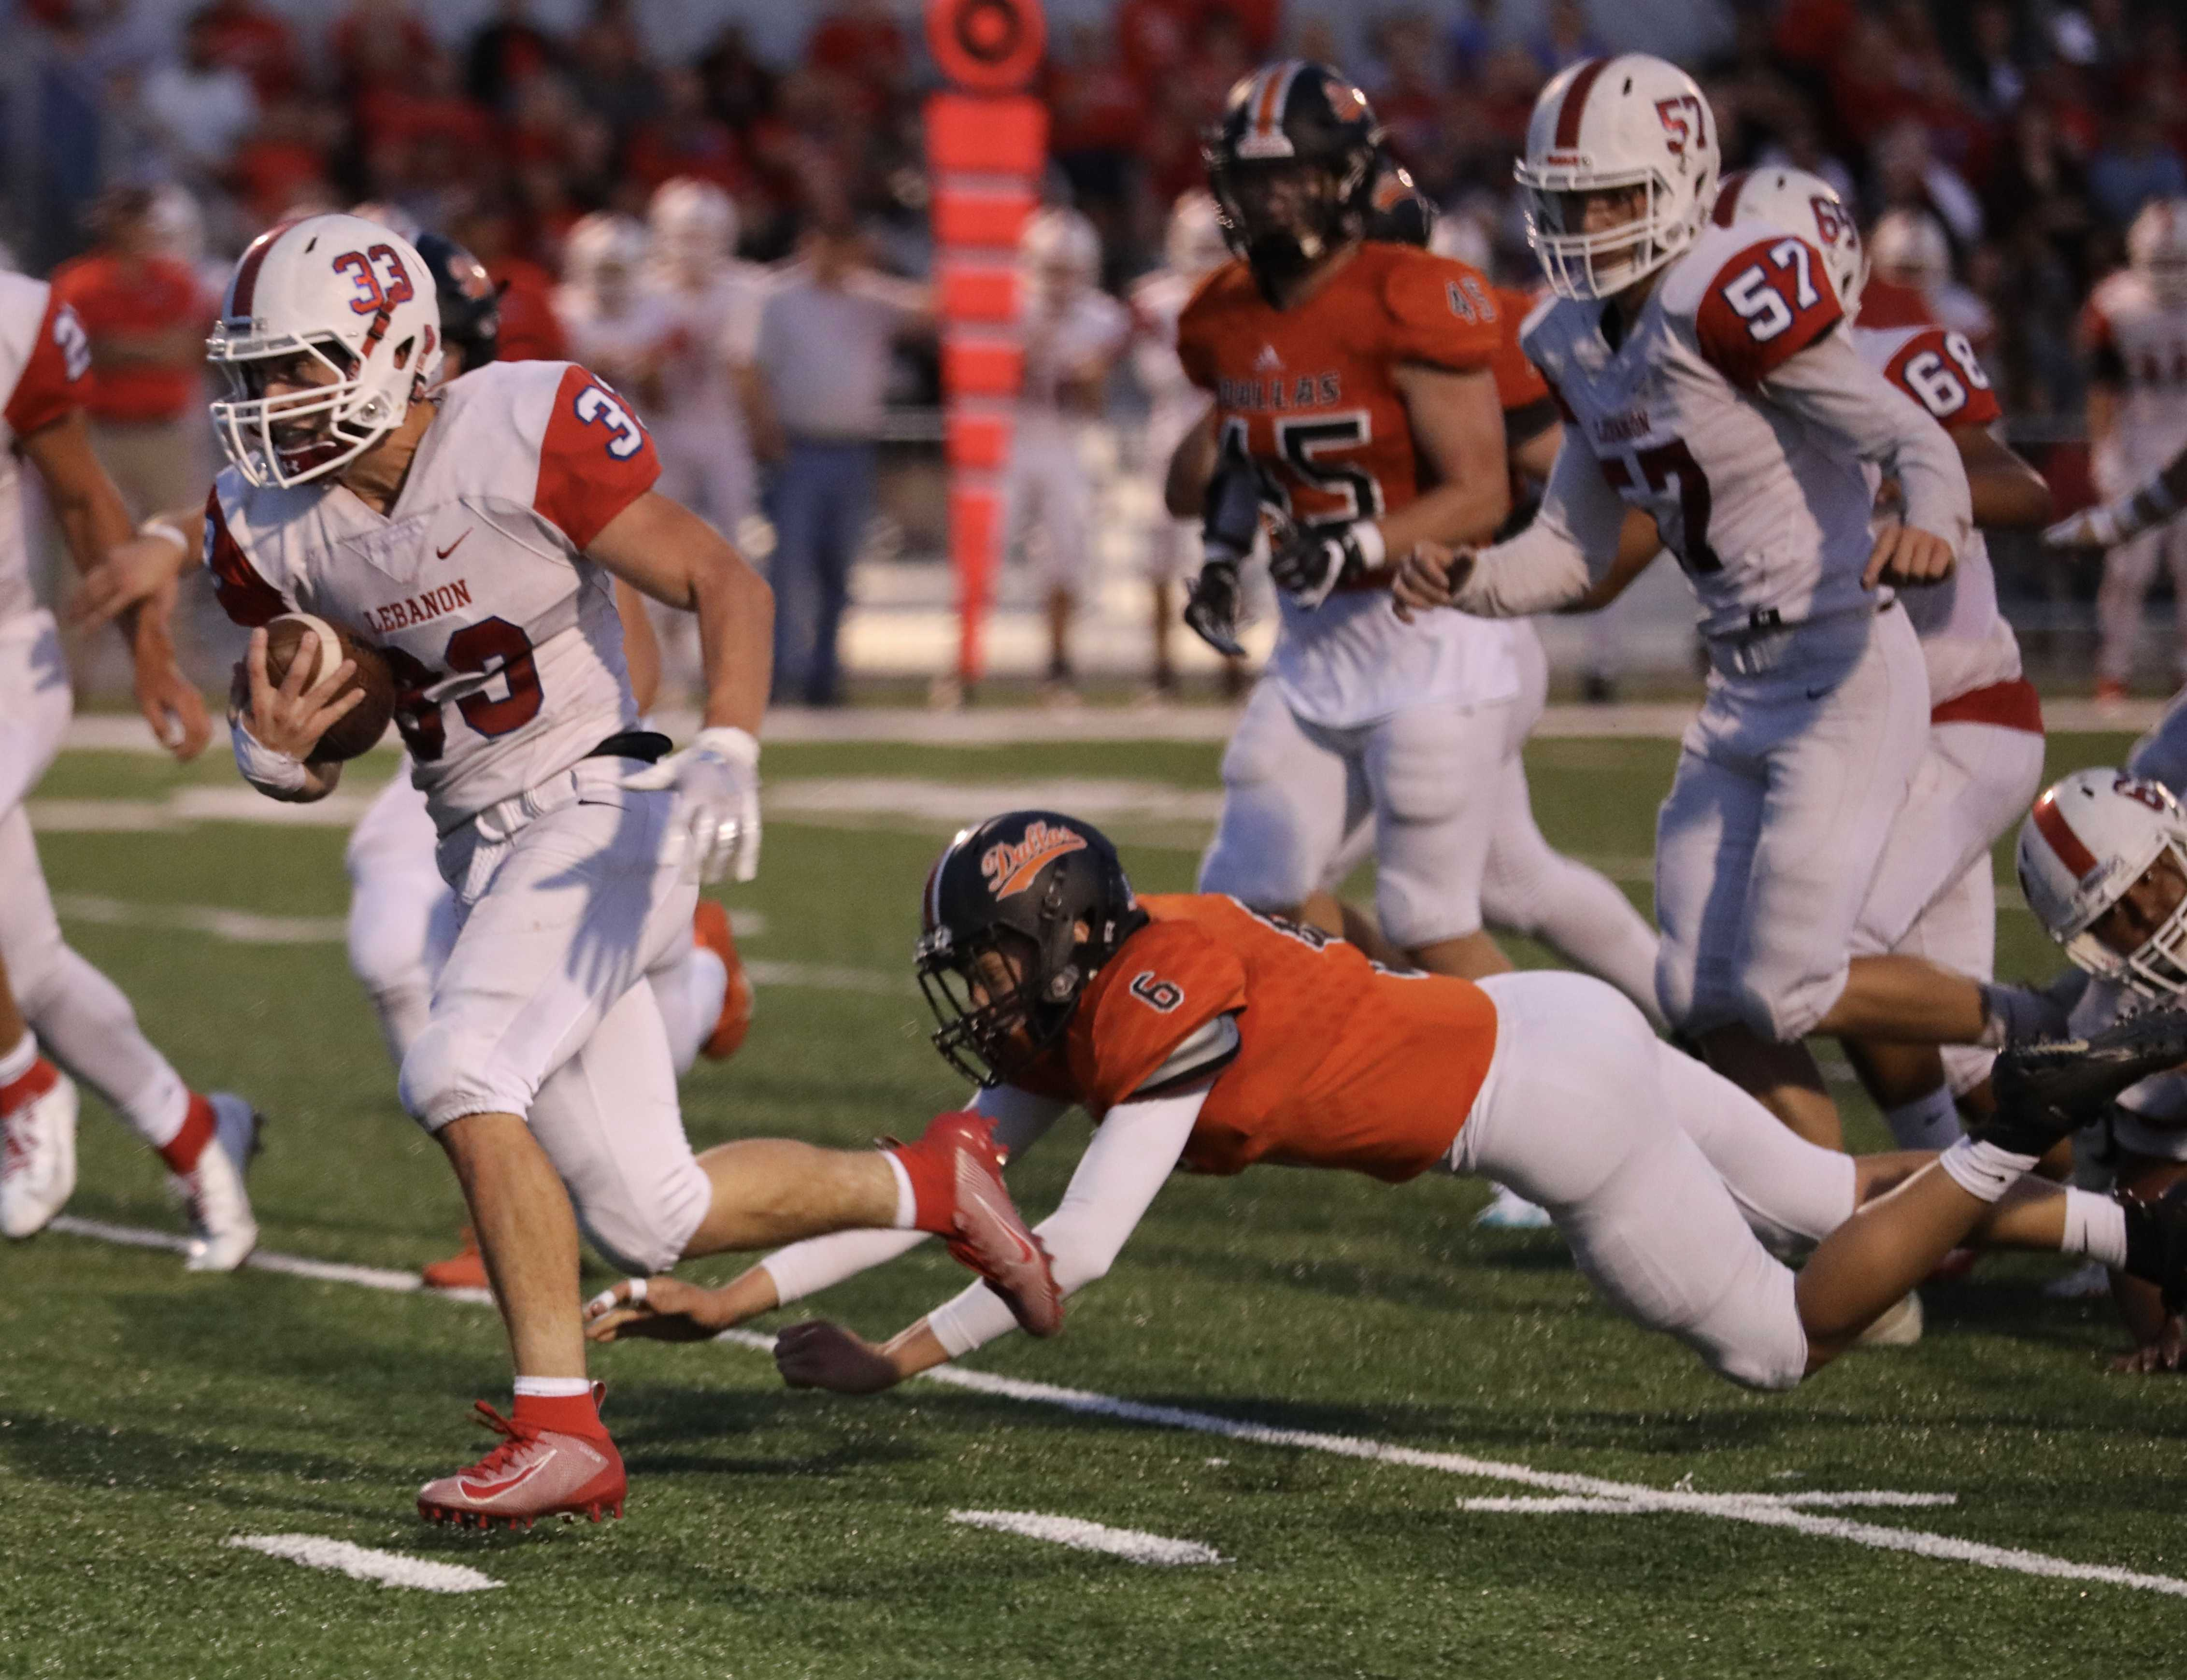 Lebanon running back Brock Barrett escapes the tackle of Dallas' Luke Hess for a 28-yard touchdown run. (Norm Maves Jr.)